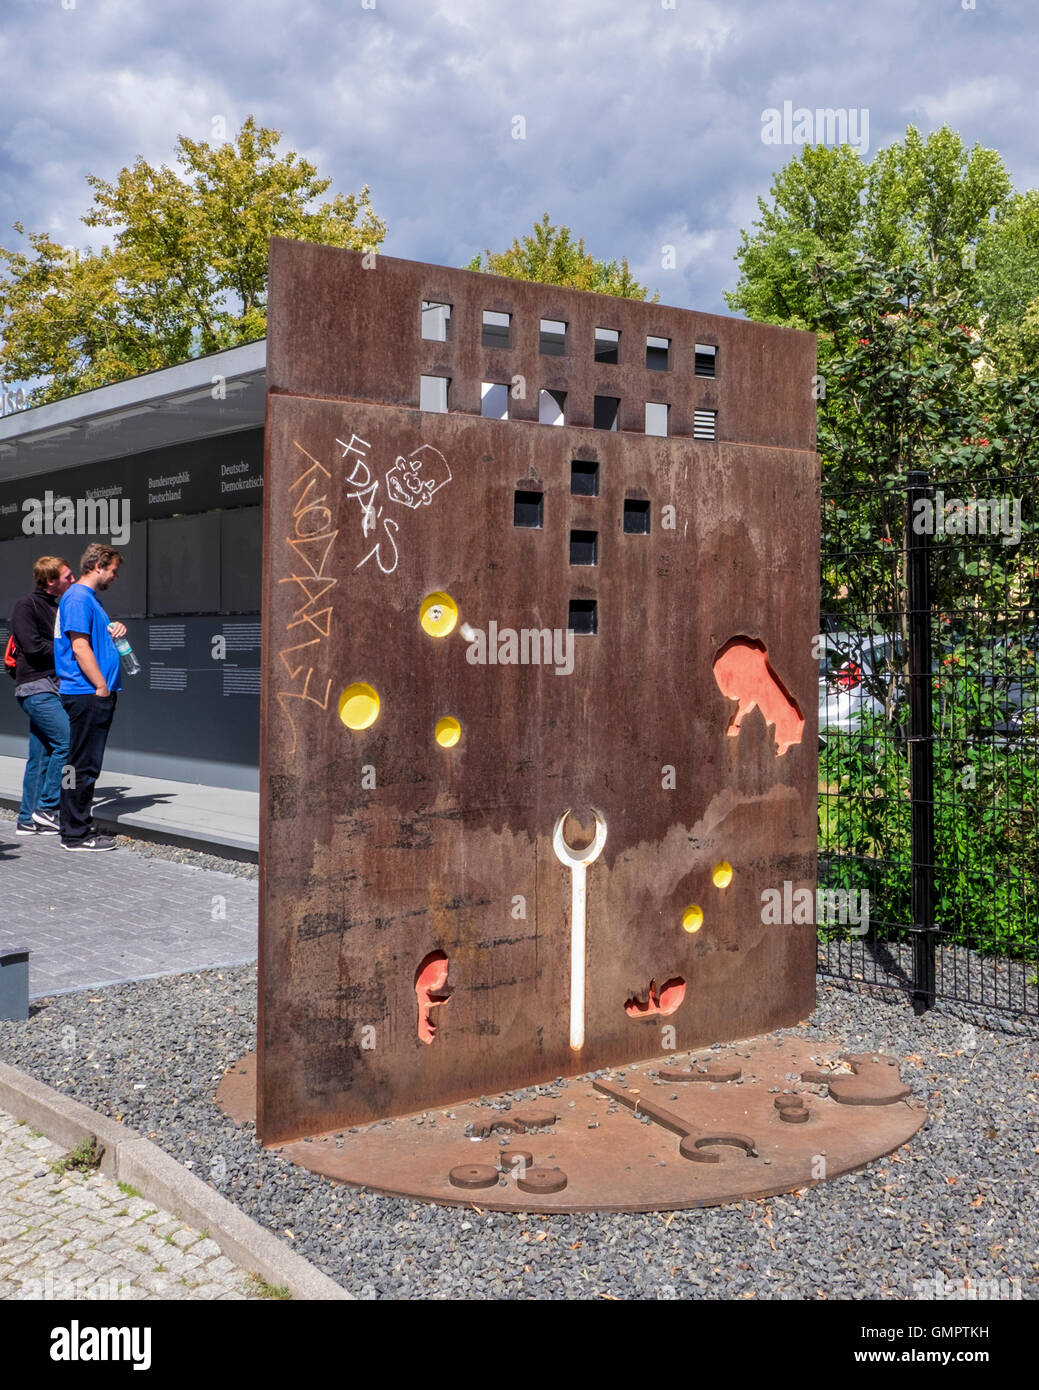 Sculpture by artist Eberhard Foest with a Berlin Wall theme. Mitte, Berlin, Germany. - Stock Image